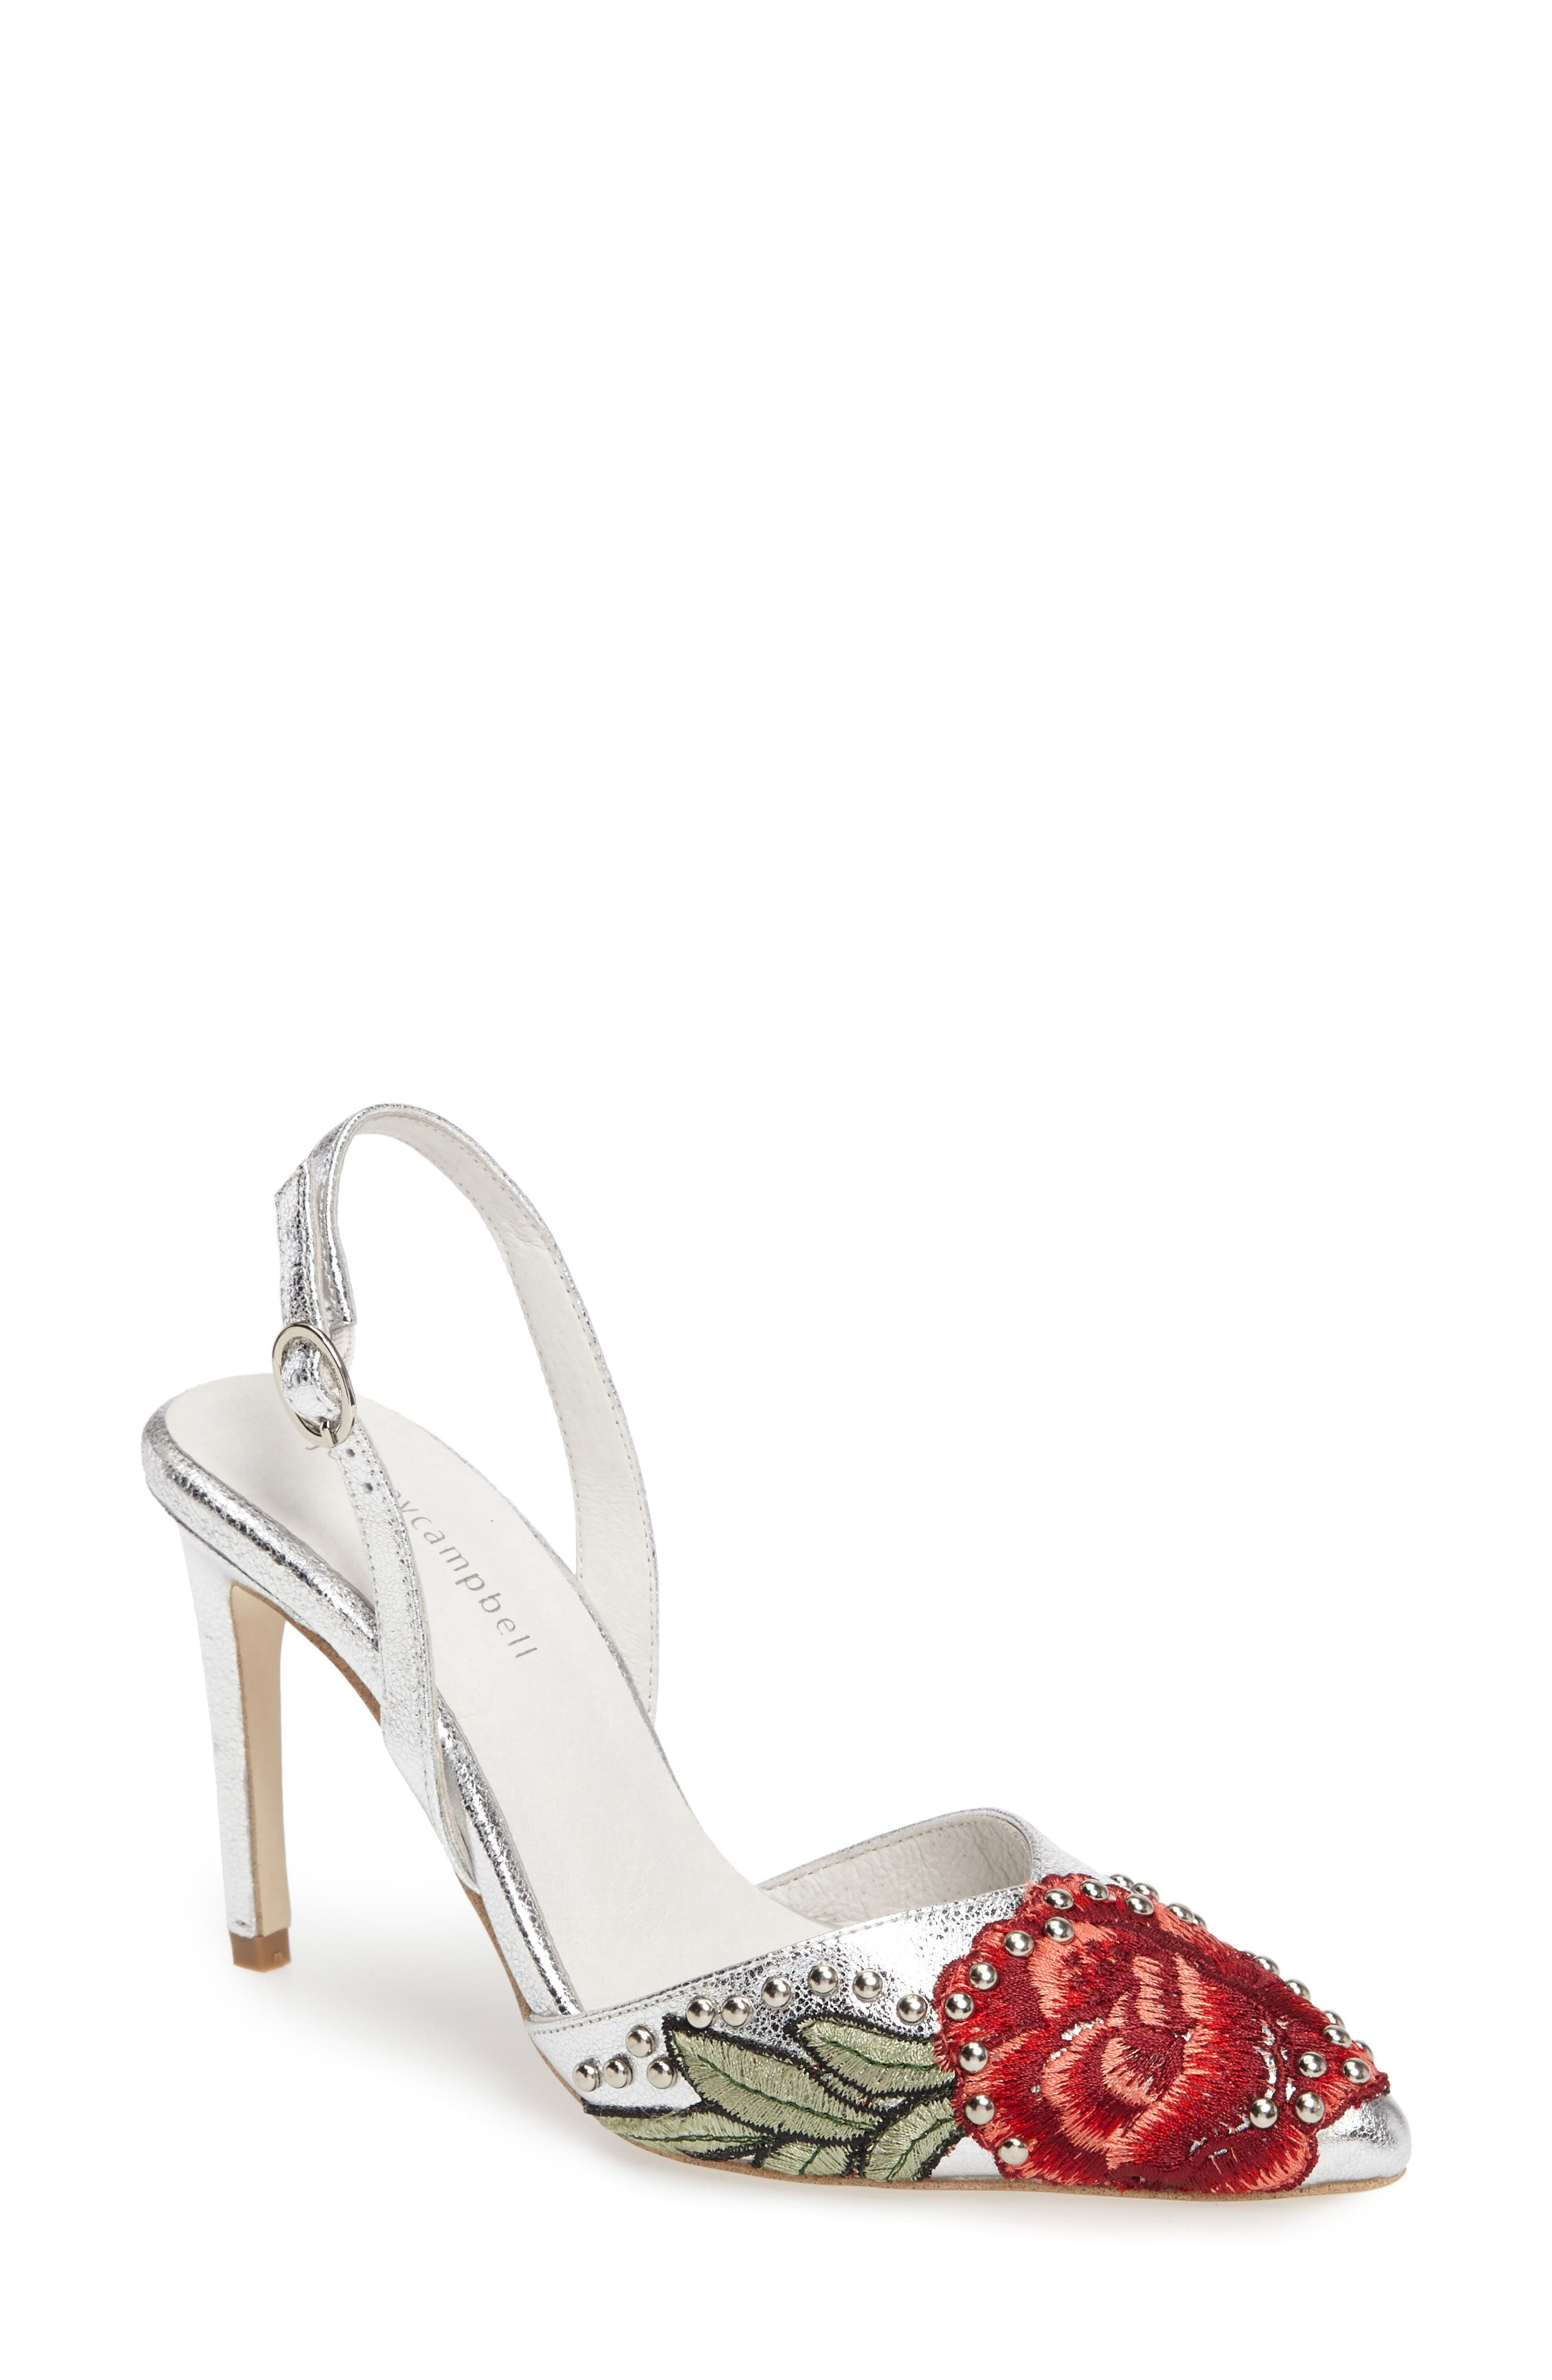 Alternate Image 1 Selected - Jeffrey Campbell Delmon Slingback Pump (Women)